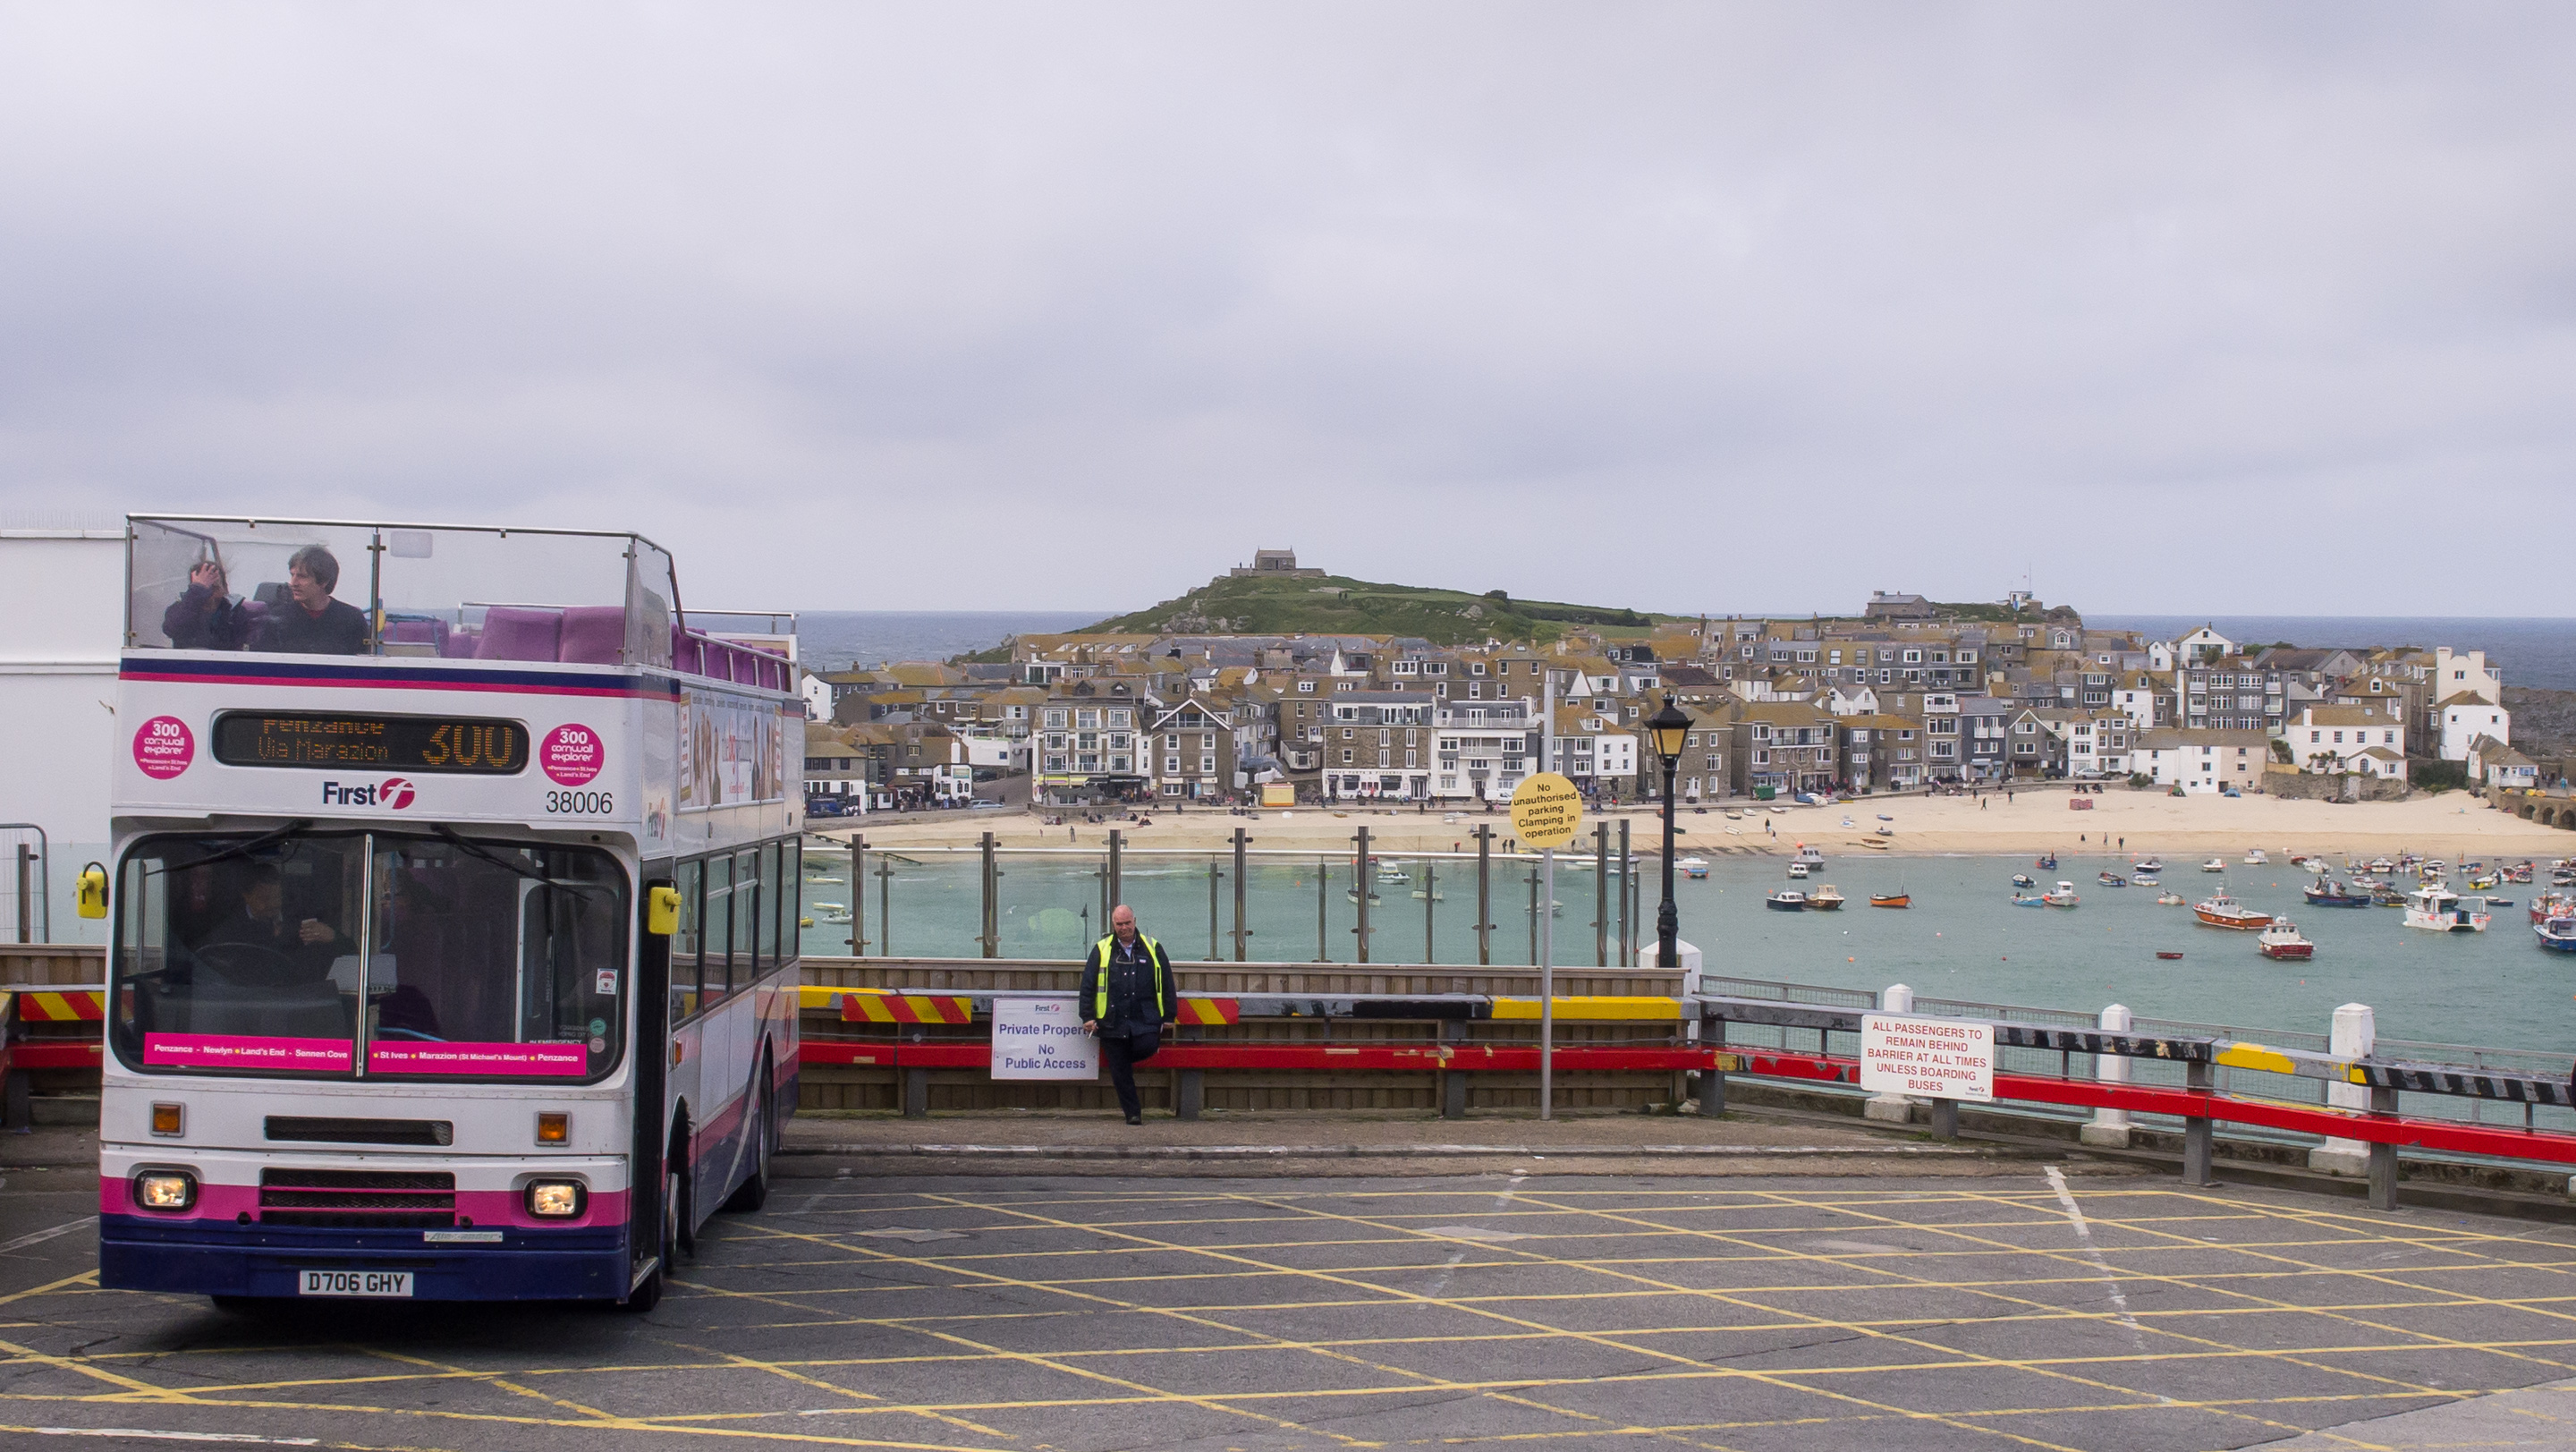 File First Devon Cornwall 38006 Arrived At St Ives On Route 300